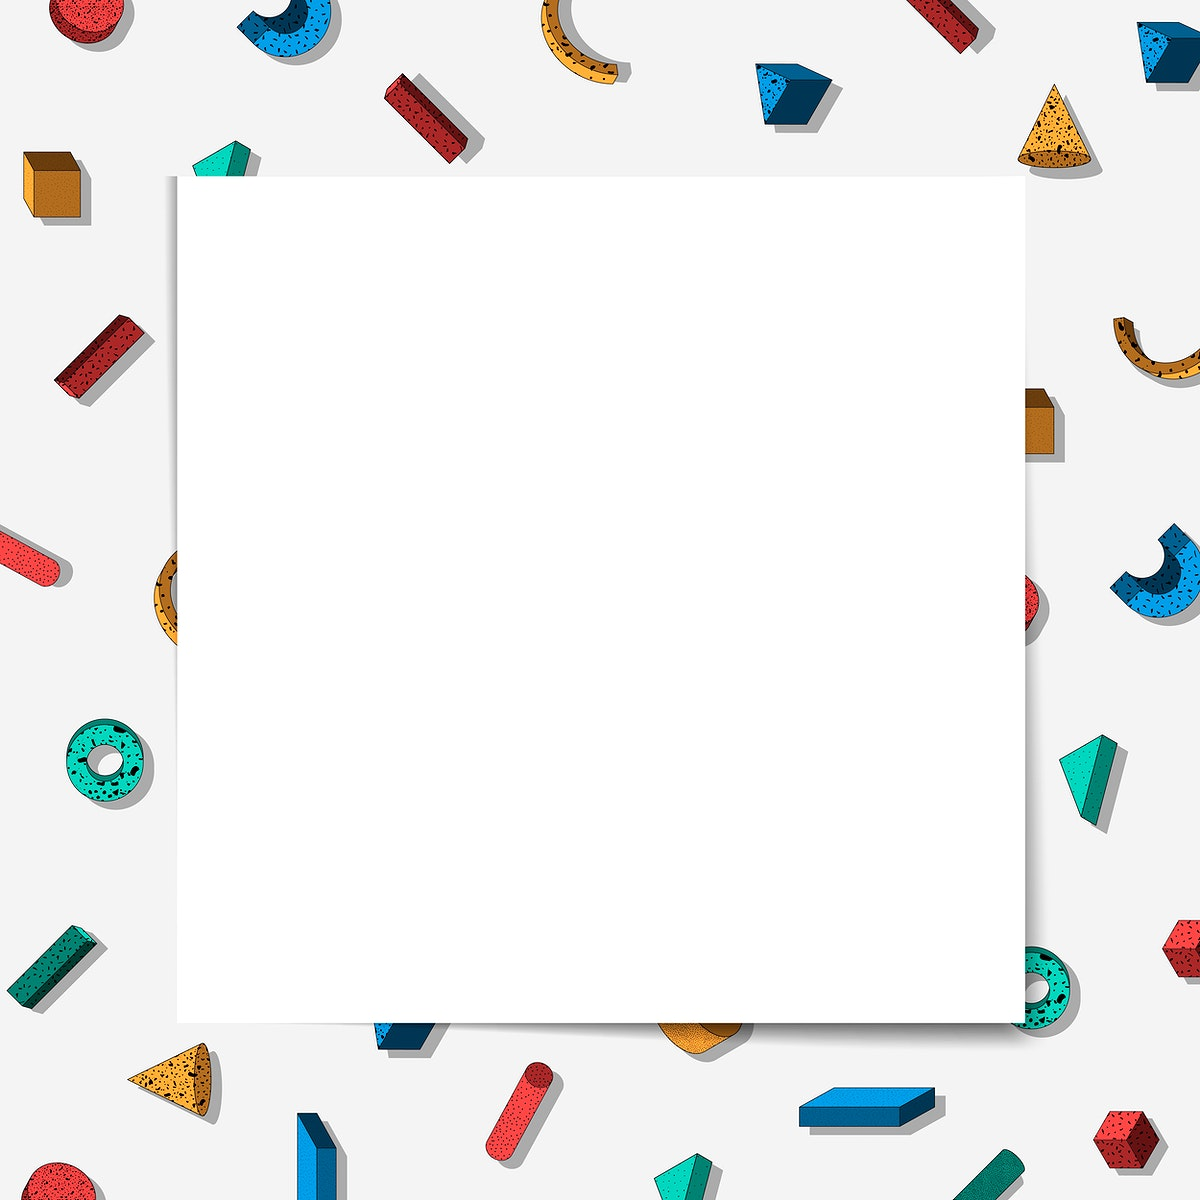 Colorful Memphis pattern frame vector